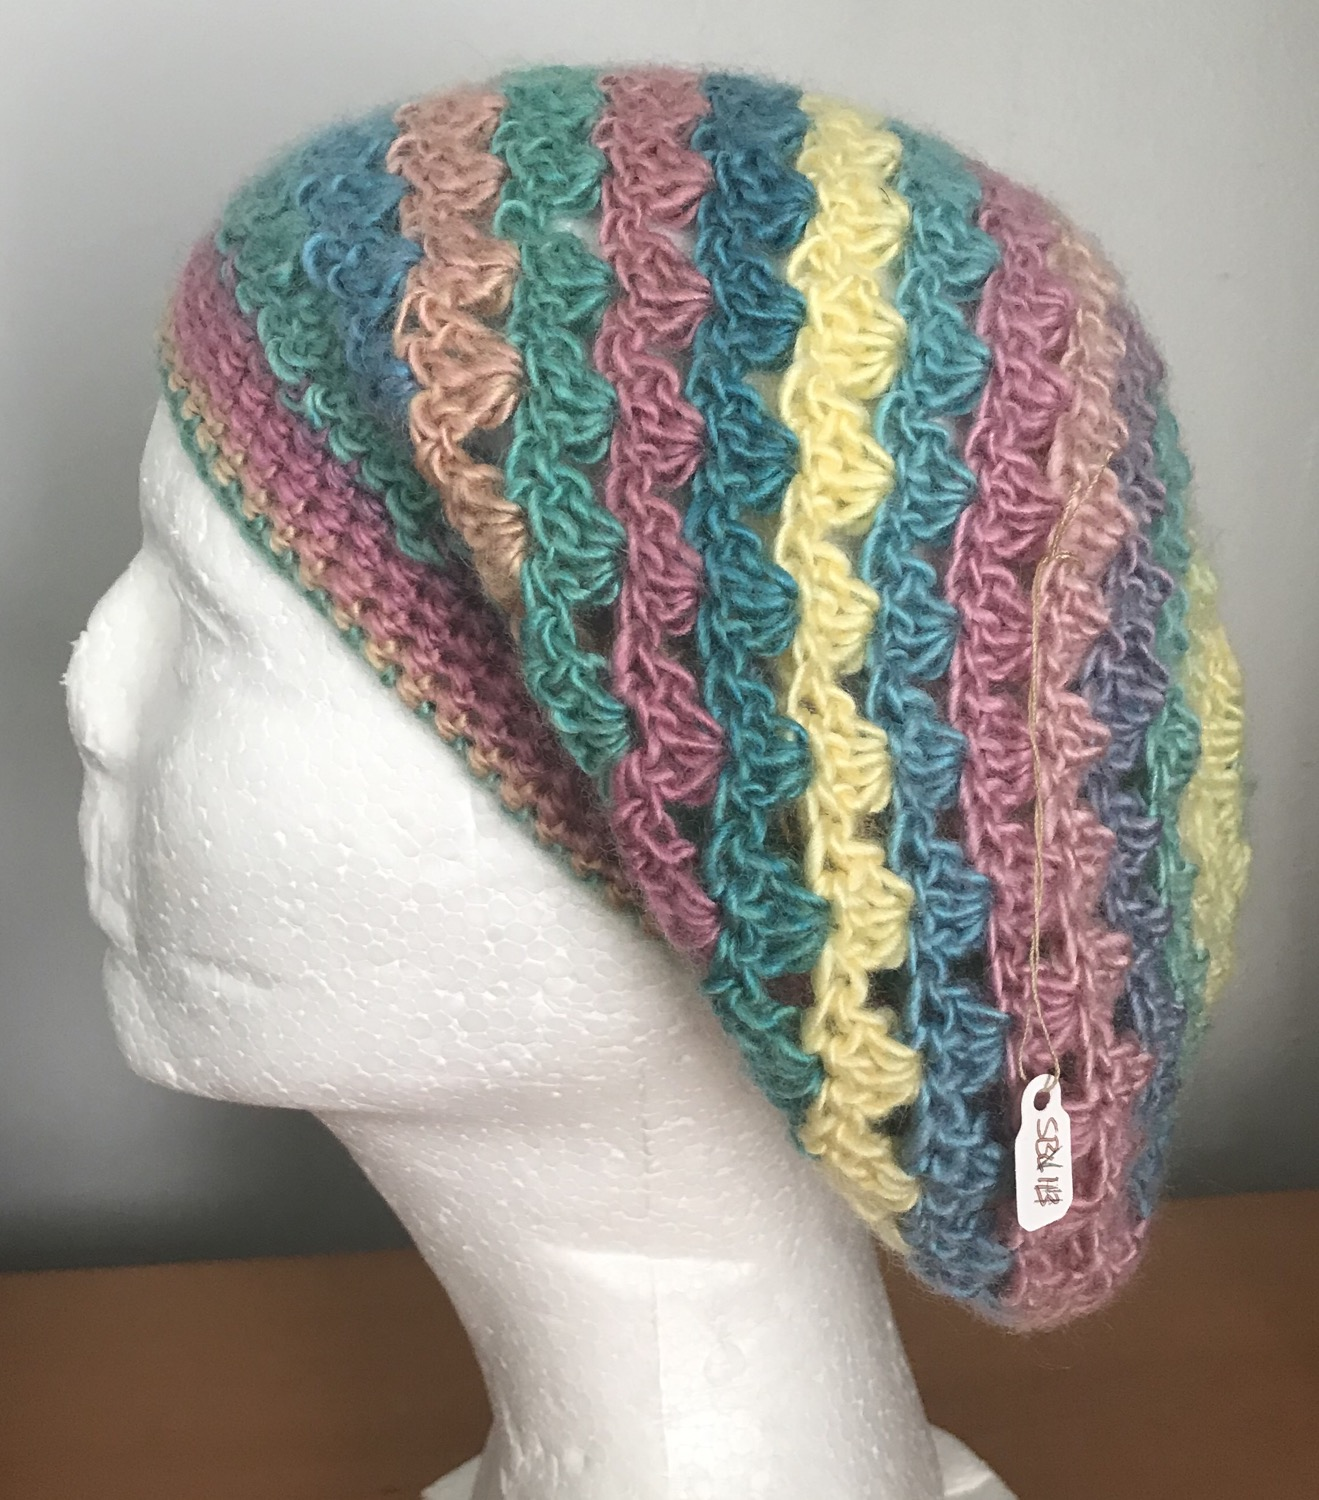 Candied V-Stitch Slouchy Beanie